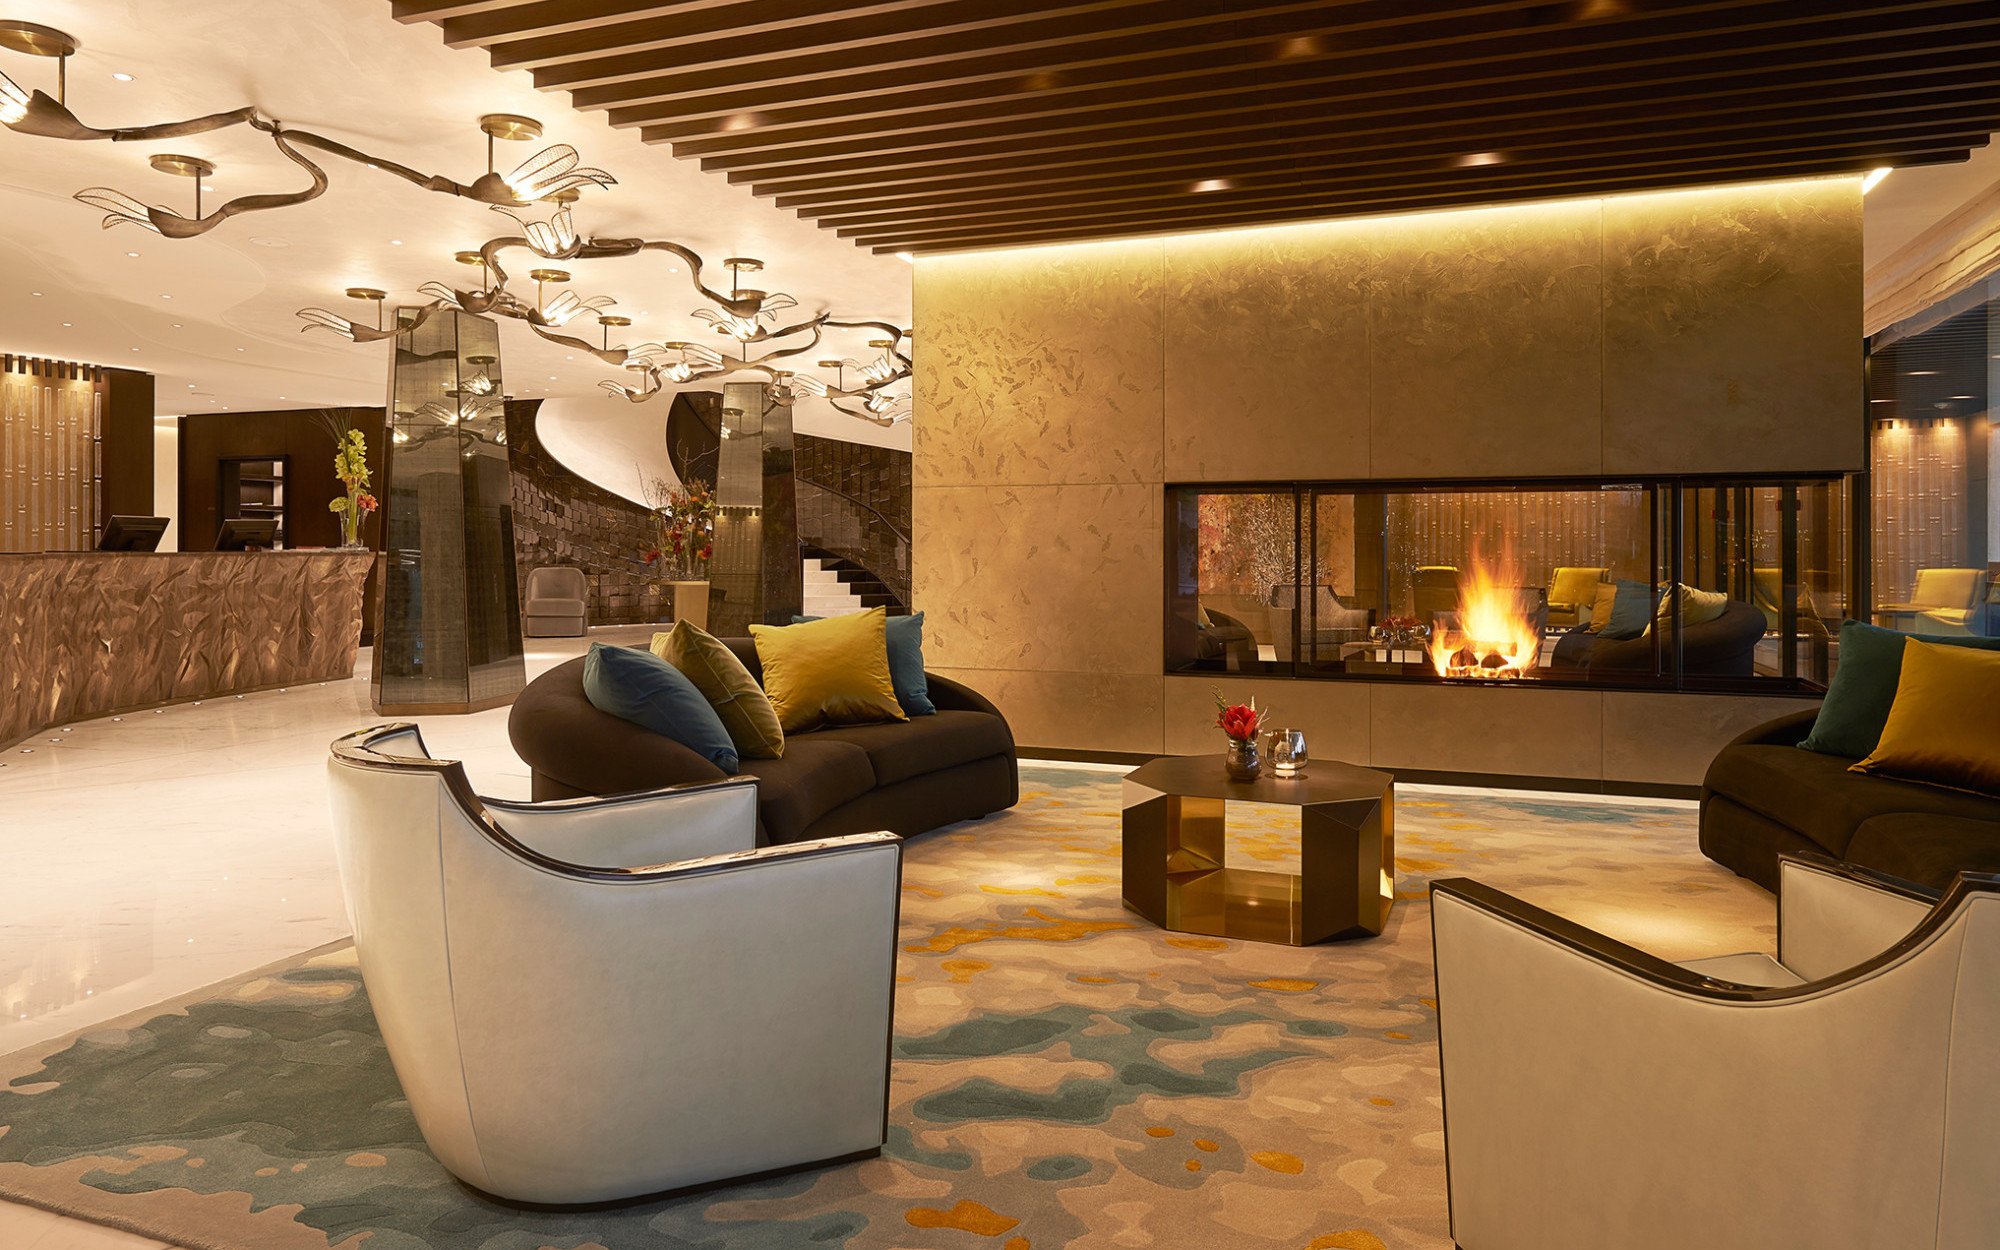 Atlantis by Giardino Lobby Zurich Luxury Hotel Urban